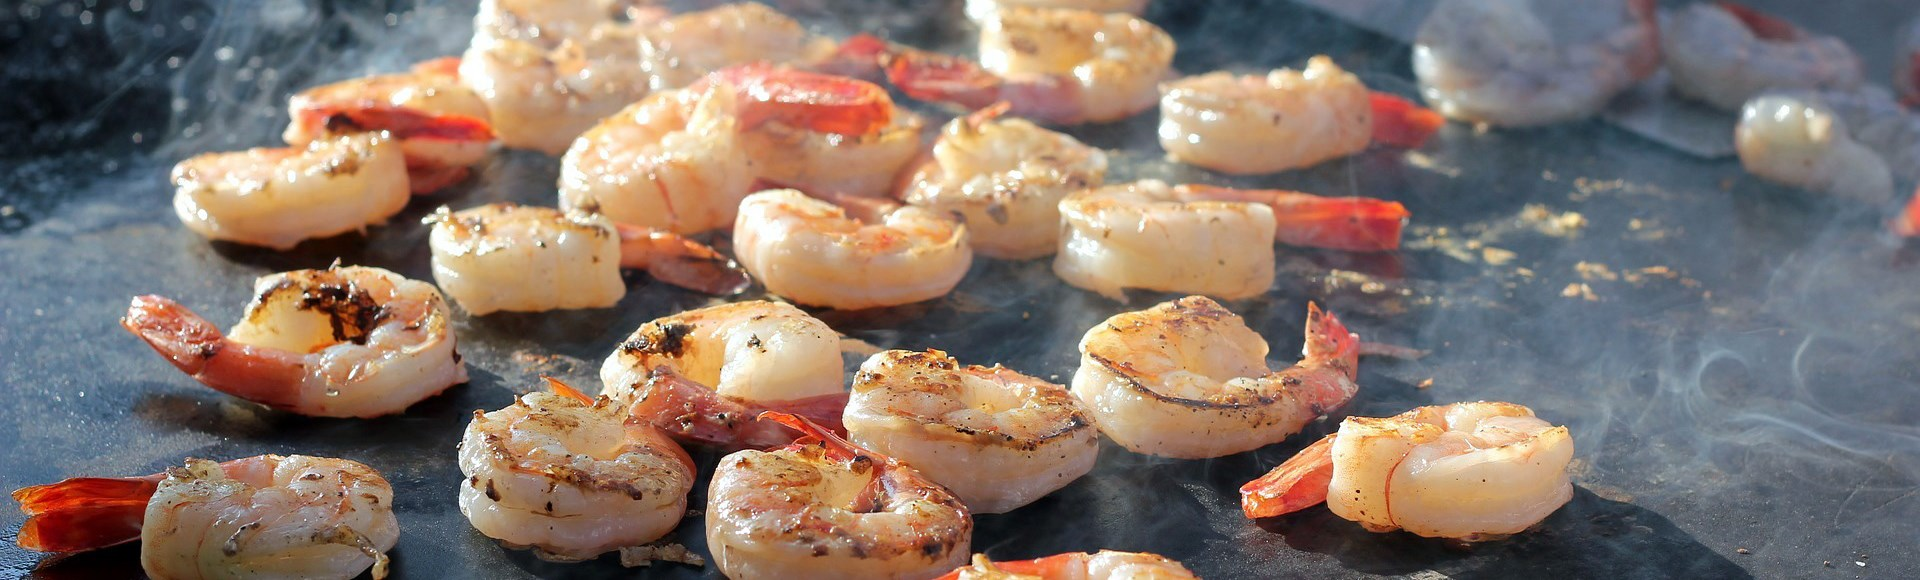 shrimps-cooked-on-a-flat-top-grill - Alargo Private Chef Service in Crete | Christos & Michael